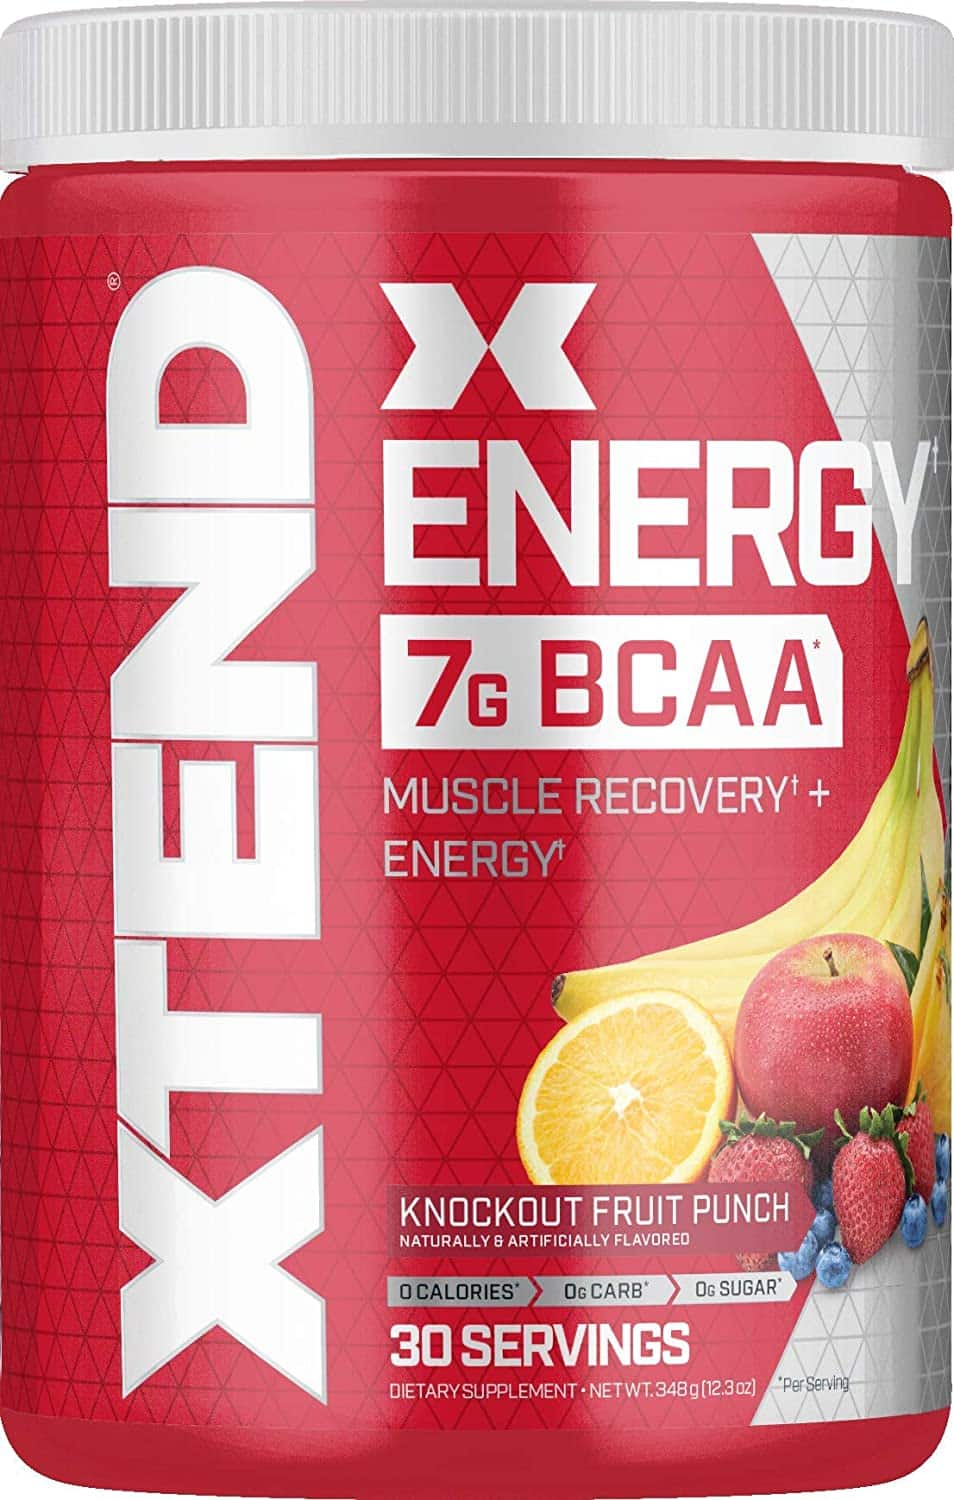 XTEND Energy BCAA Powder Knockout Fruit Punch - 125mg Caffeine + Sugar Free Pre Workout Muscle Recovery Drink with Amino Acids - 7g BCAAs for Men & Women - 30 Servings $14.69